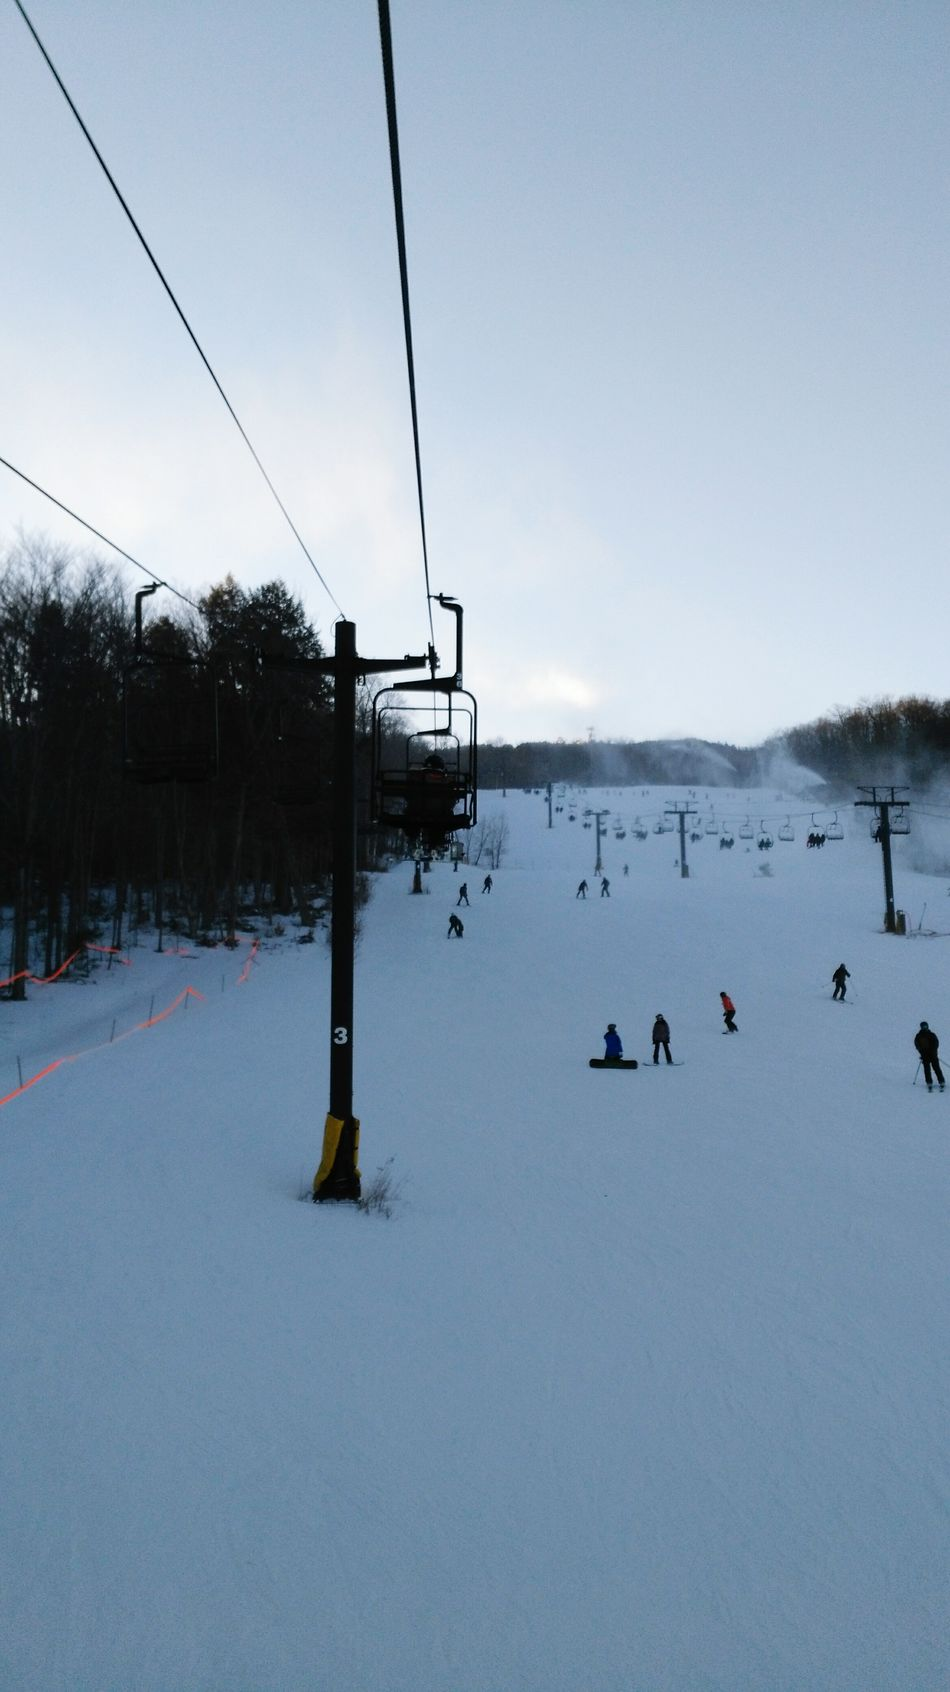 Winter Snow Cold Temperature Nature Frozen Sky Outdoors Beauty In Nature Day Landscape Ski Lift Overhead Cable Car No People